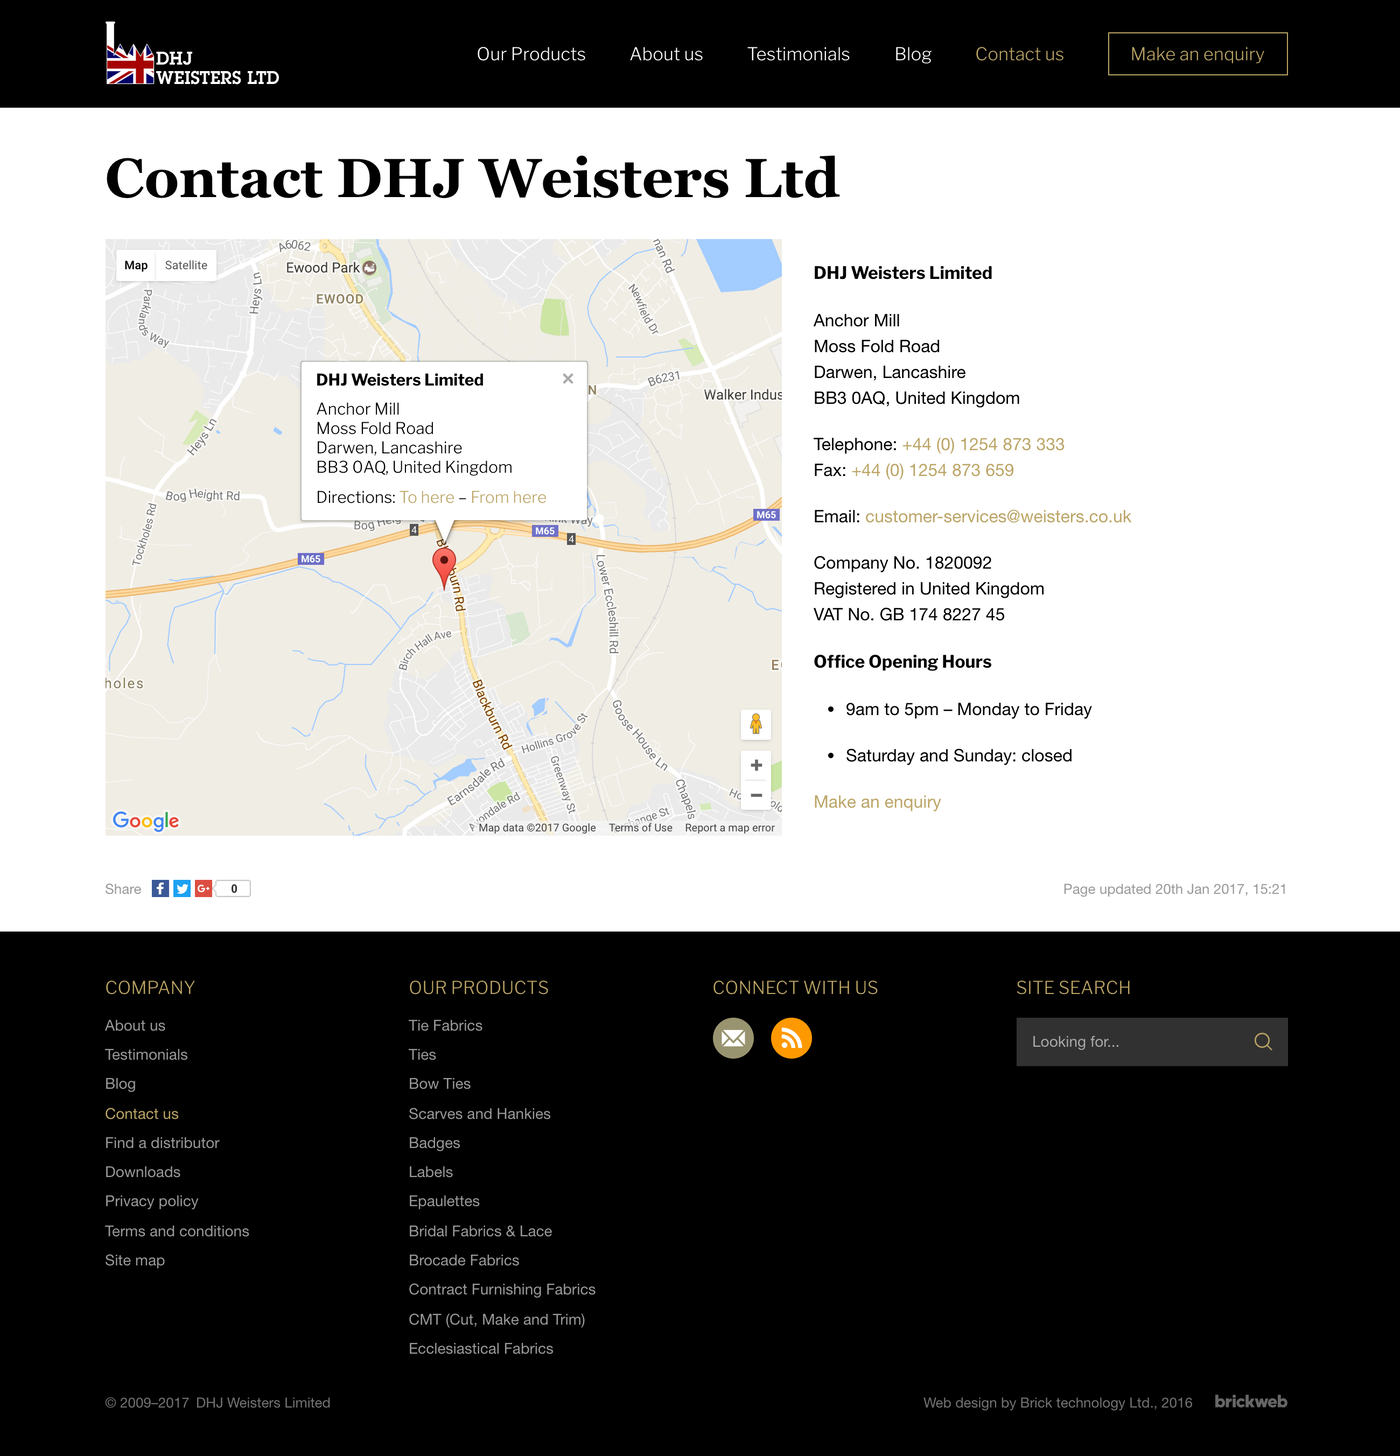 DHJ Weisters Limited Contact us